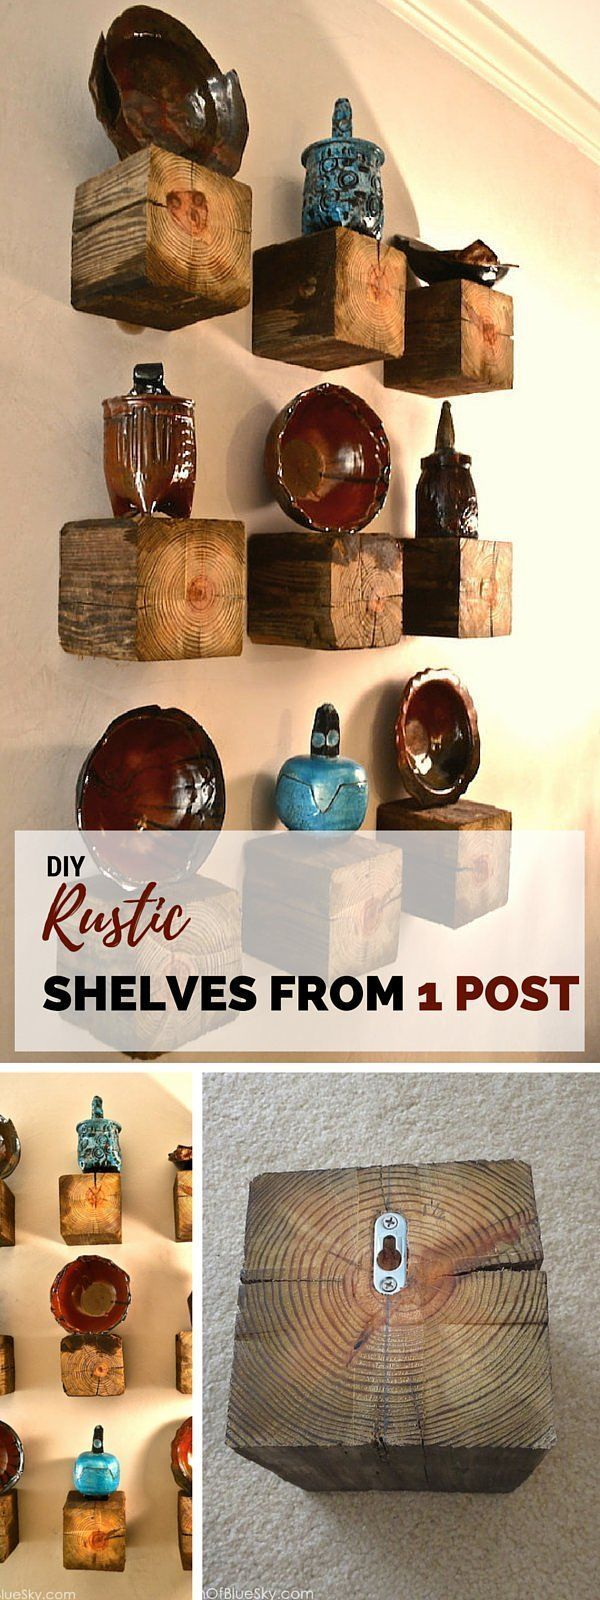 20 rustic DIY and handcrafted accents bring warmth…